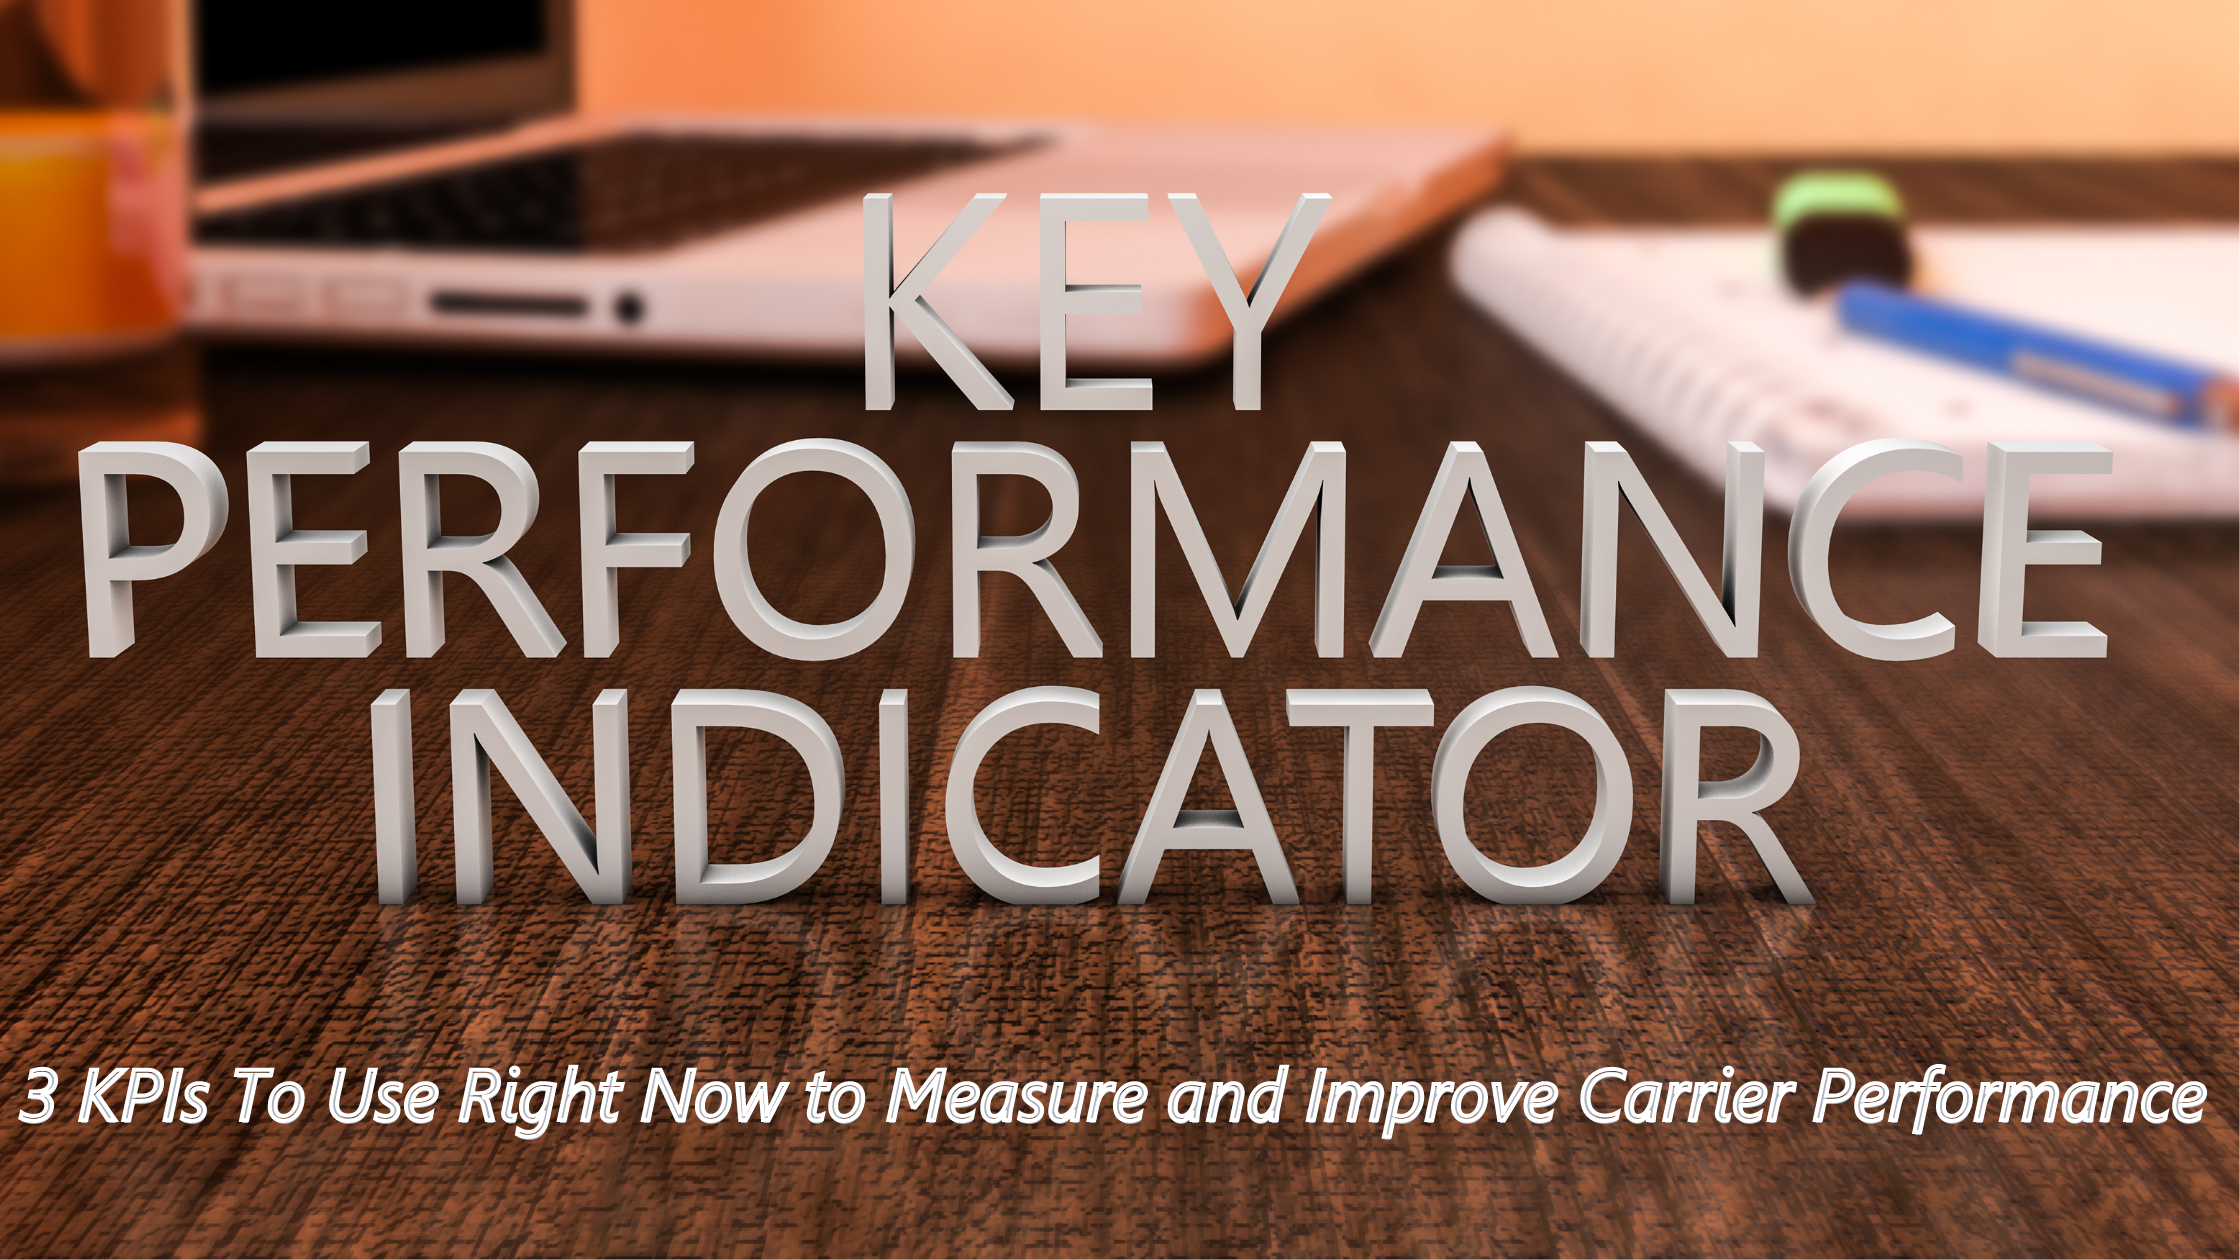 3 KPIs To Use Right Now to Measure and Improve Carrier Performance